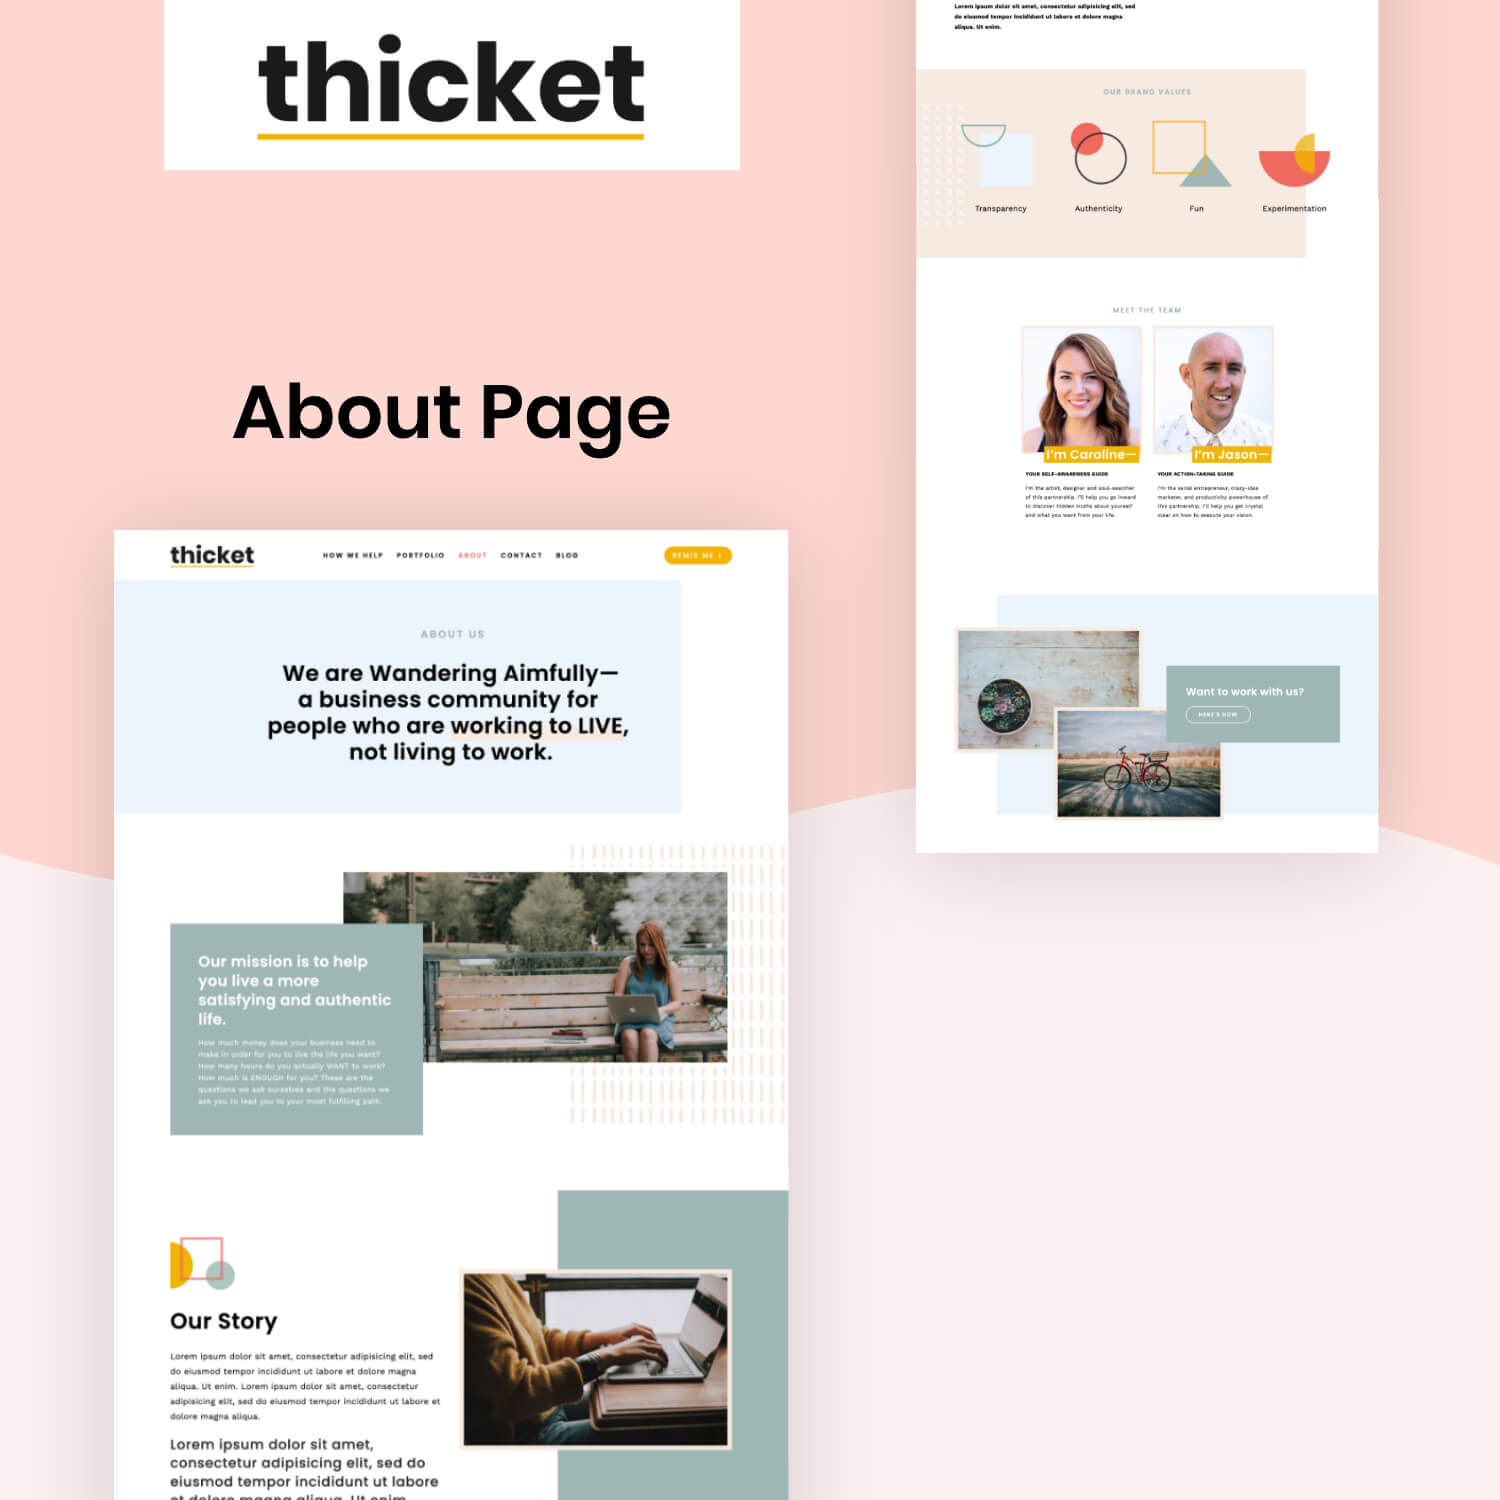 Thicket About Page